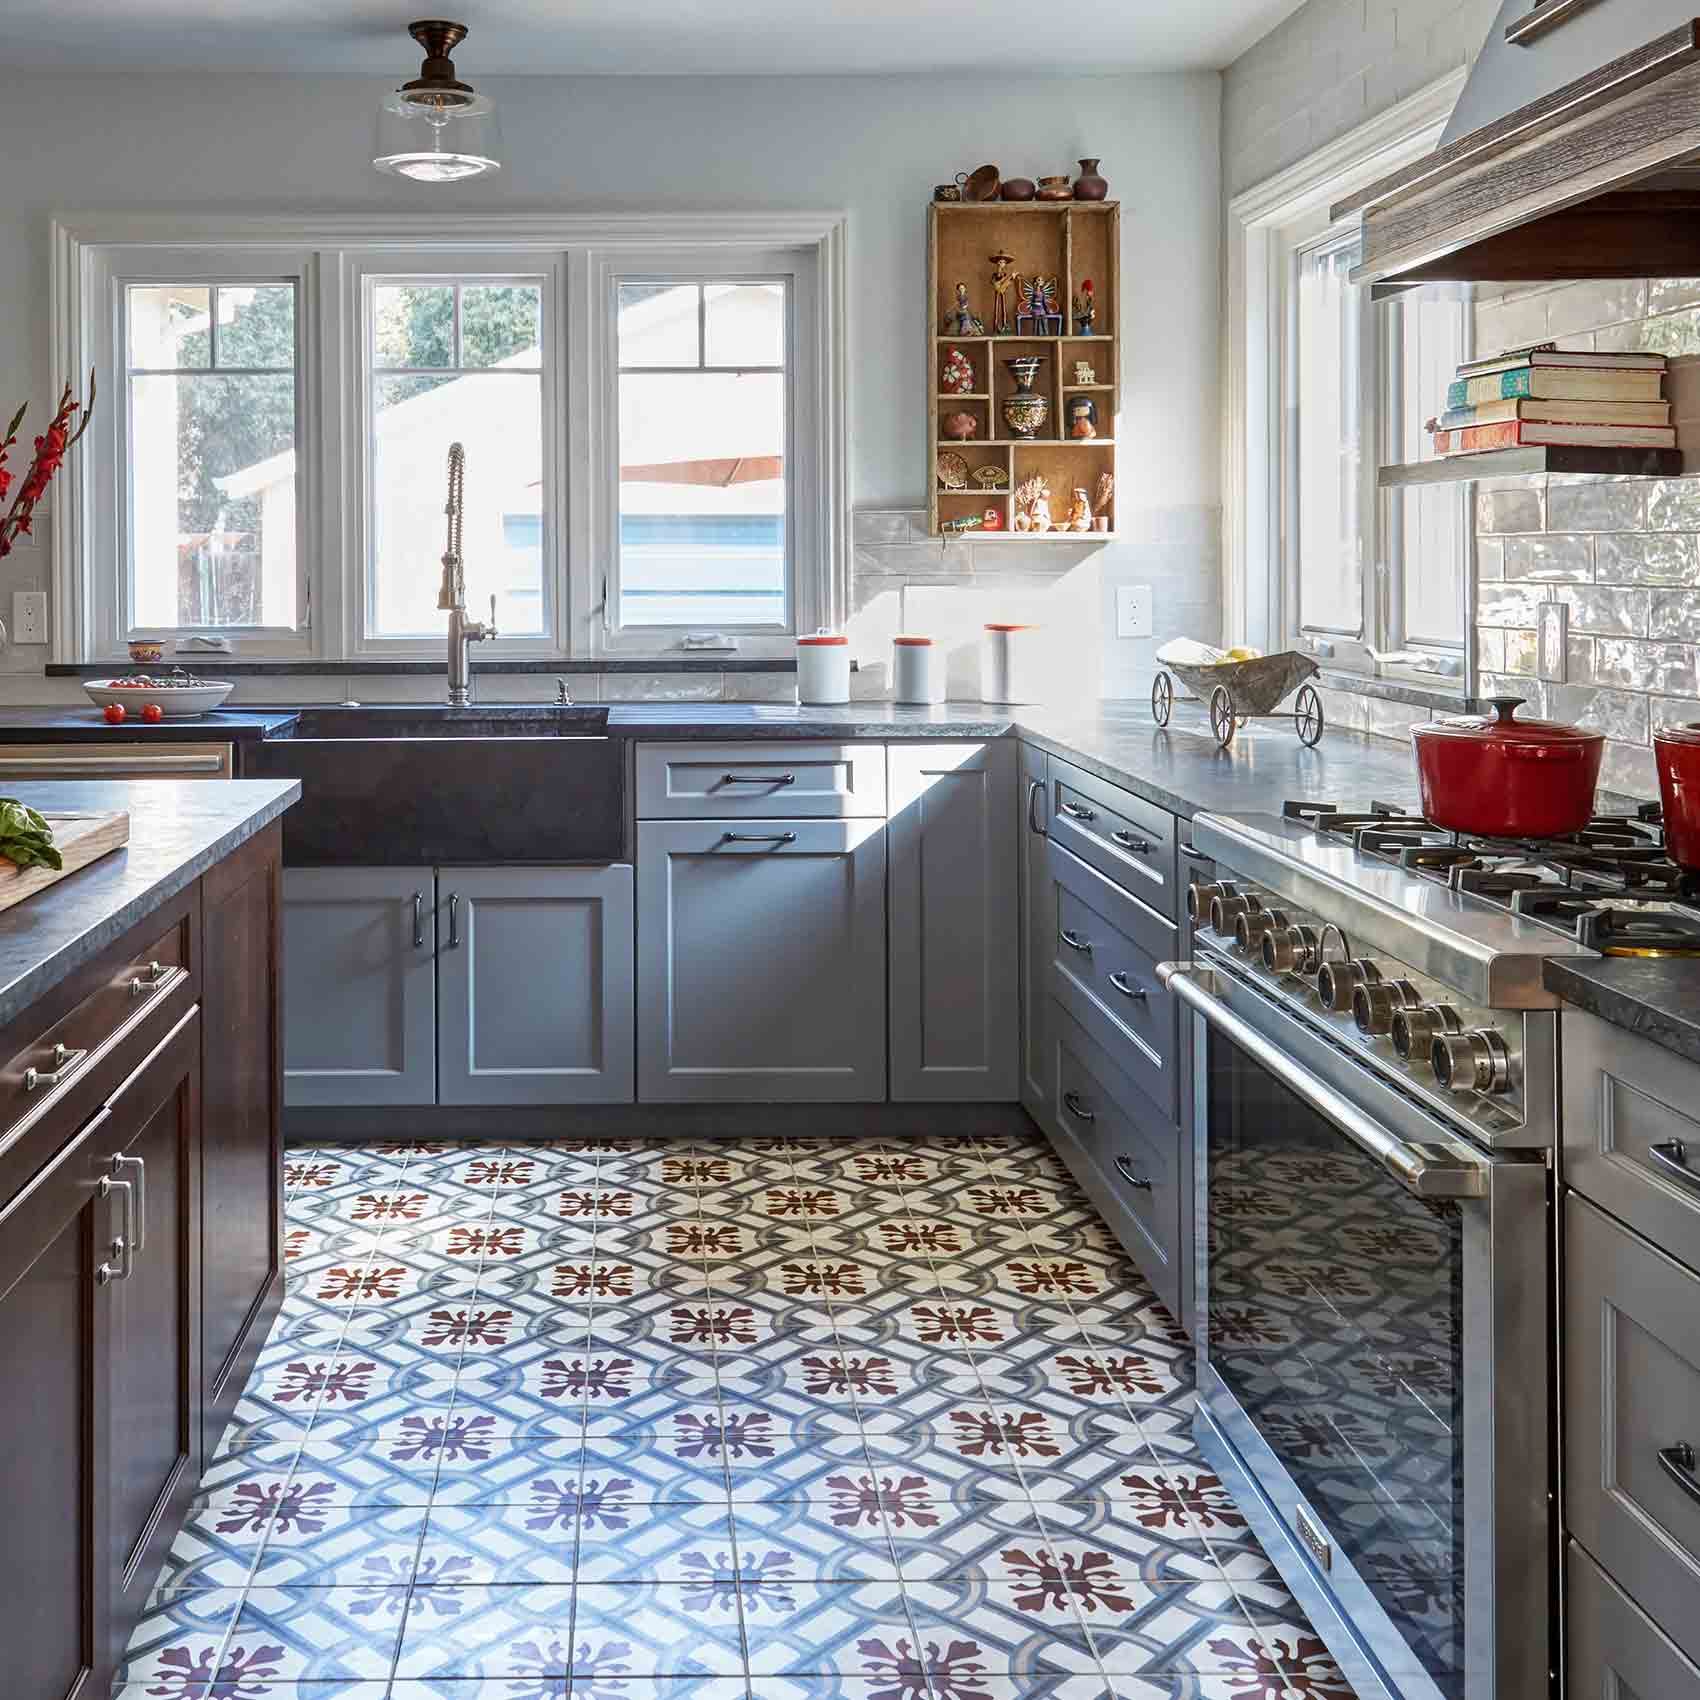 Before & After: A Hacienda-Style Makeover Focused on Accessibility, Design*Sponge